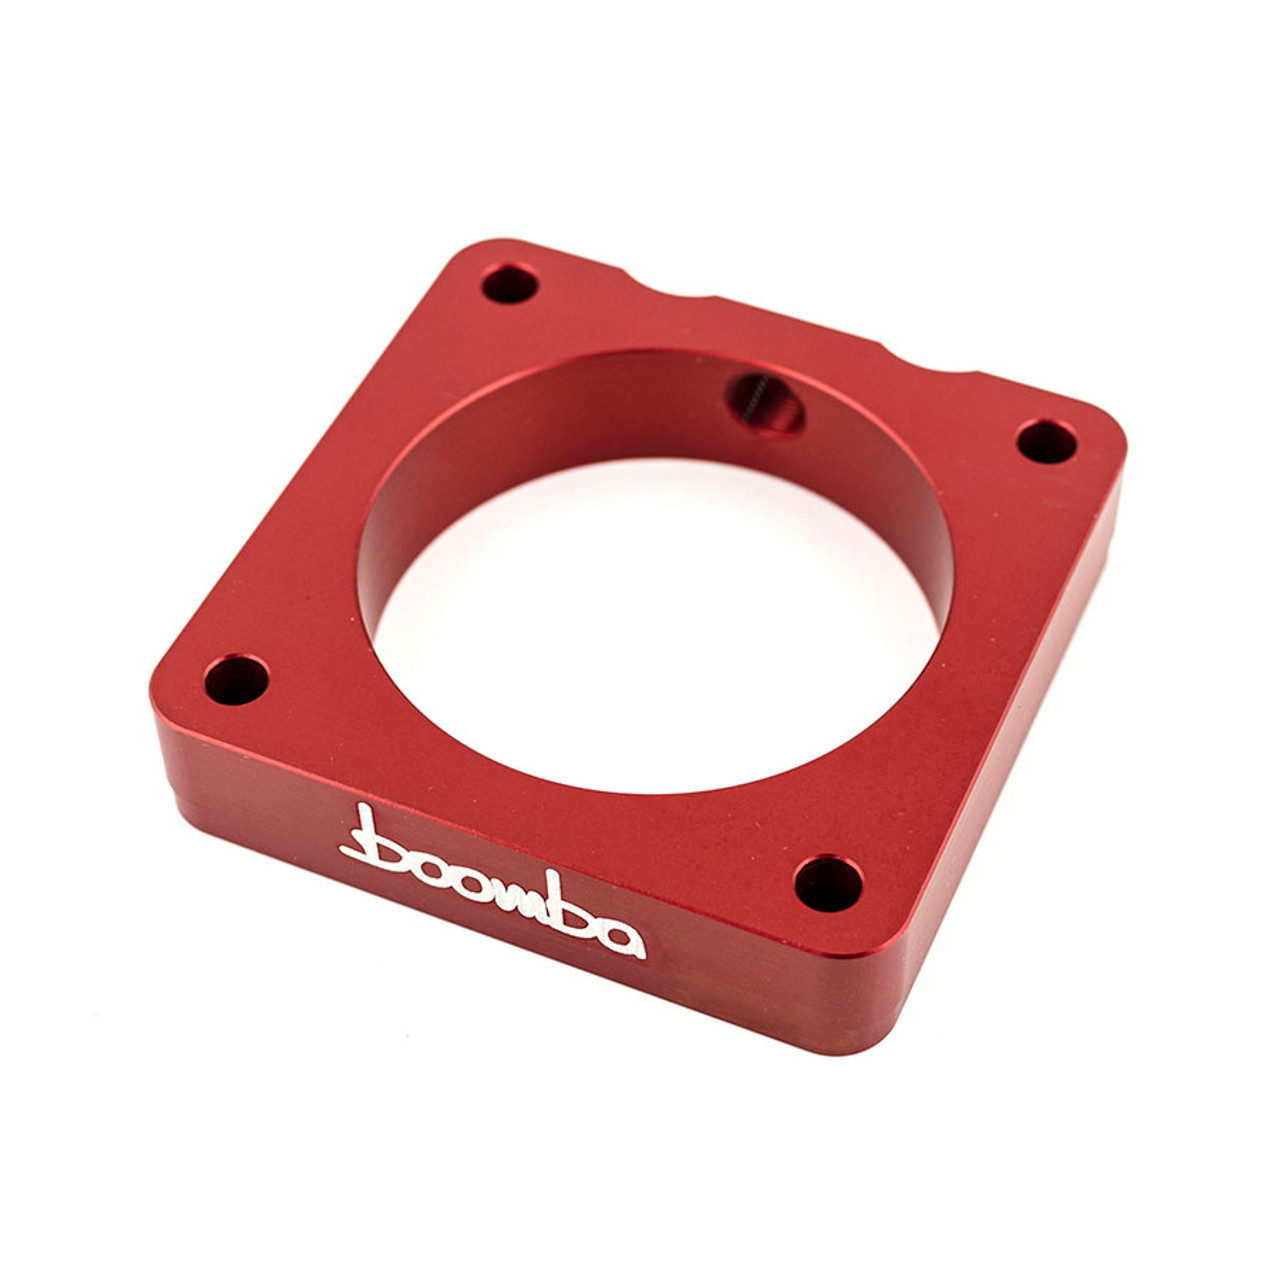 Veloster/Elantra/Forte 1.6T Intake Manifold and Throttle Body Spacer Combo